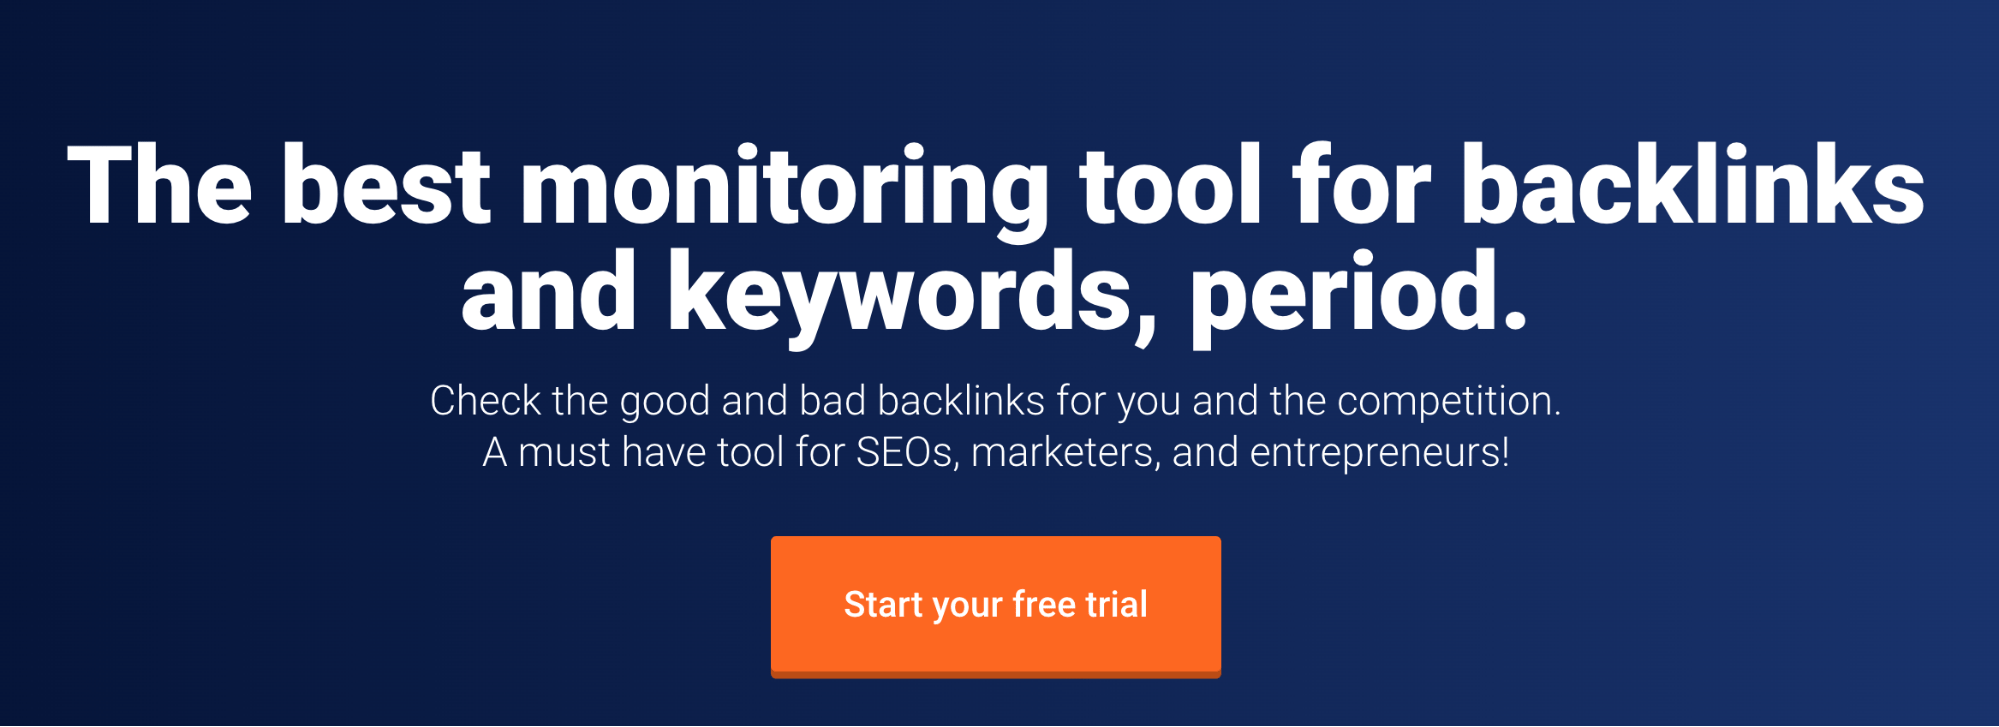 Monitor Backlinks Landing Page Snippet